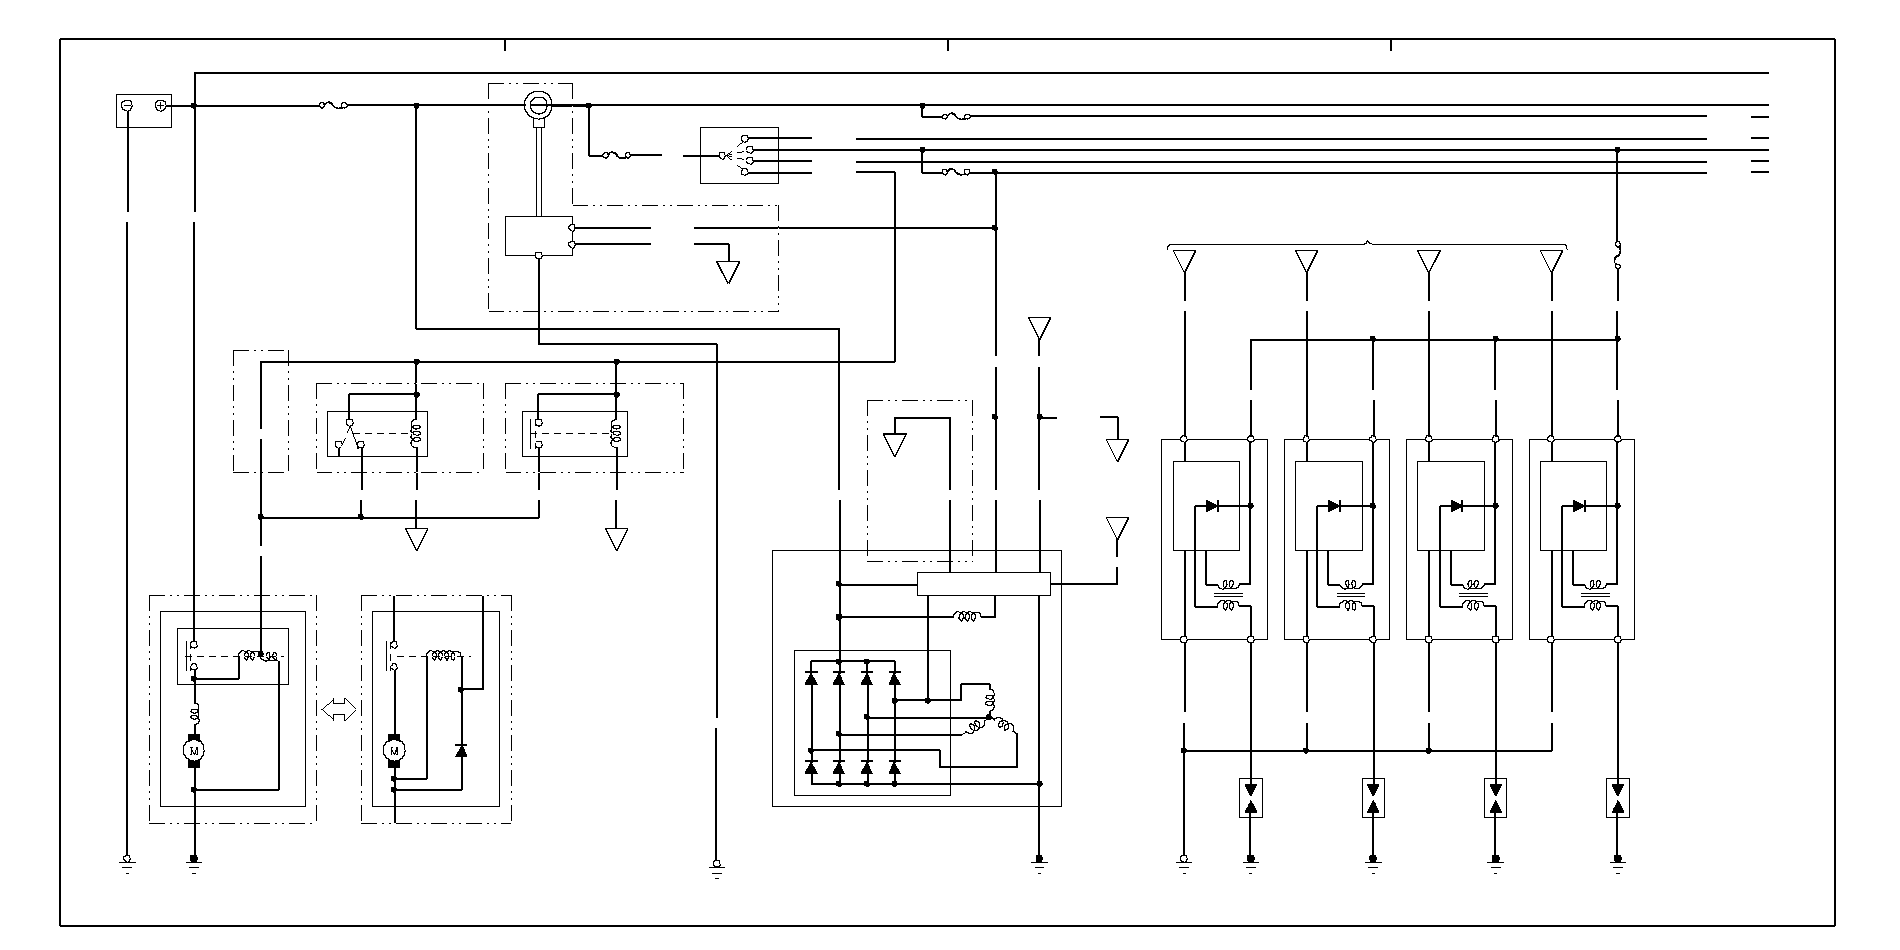 Siga-sb Wiring Diagram